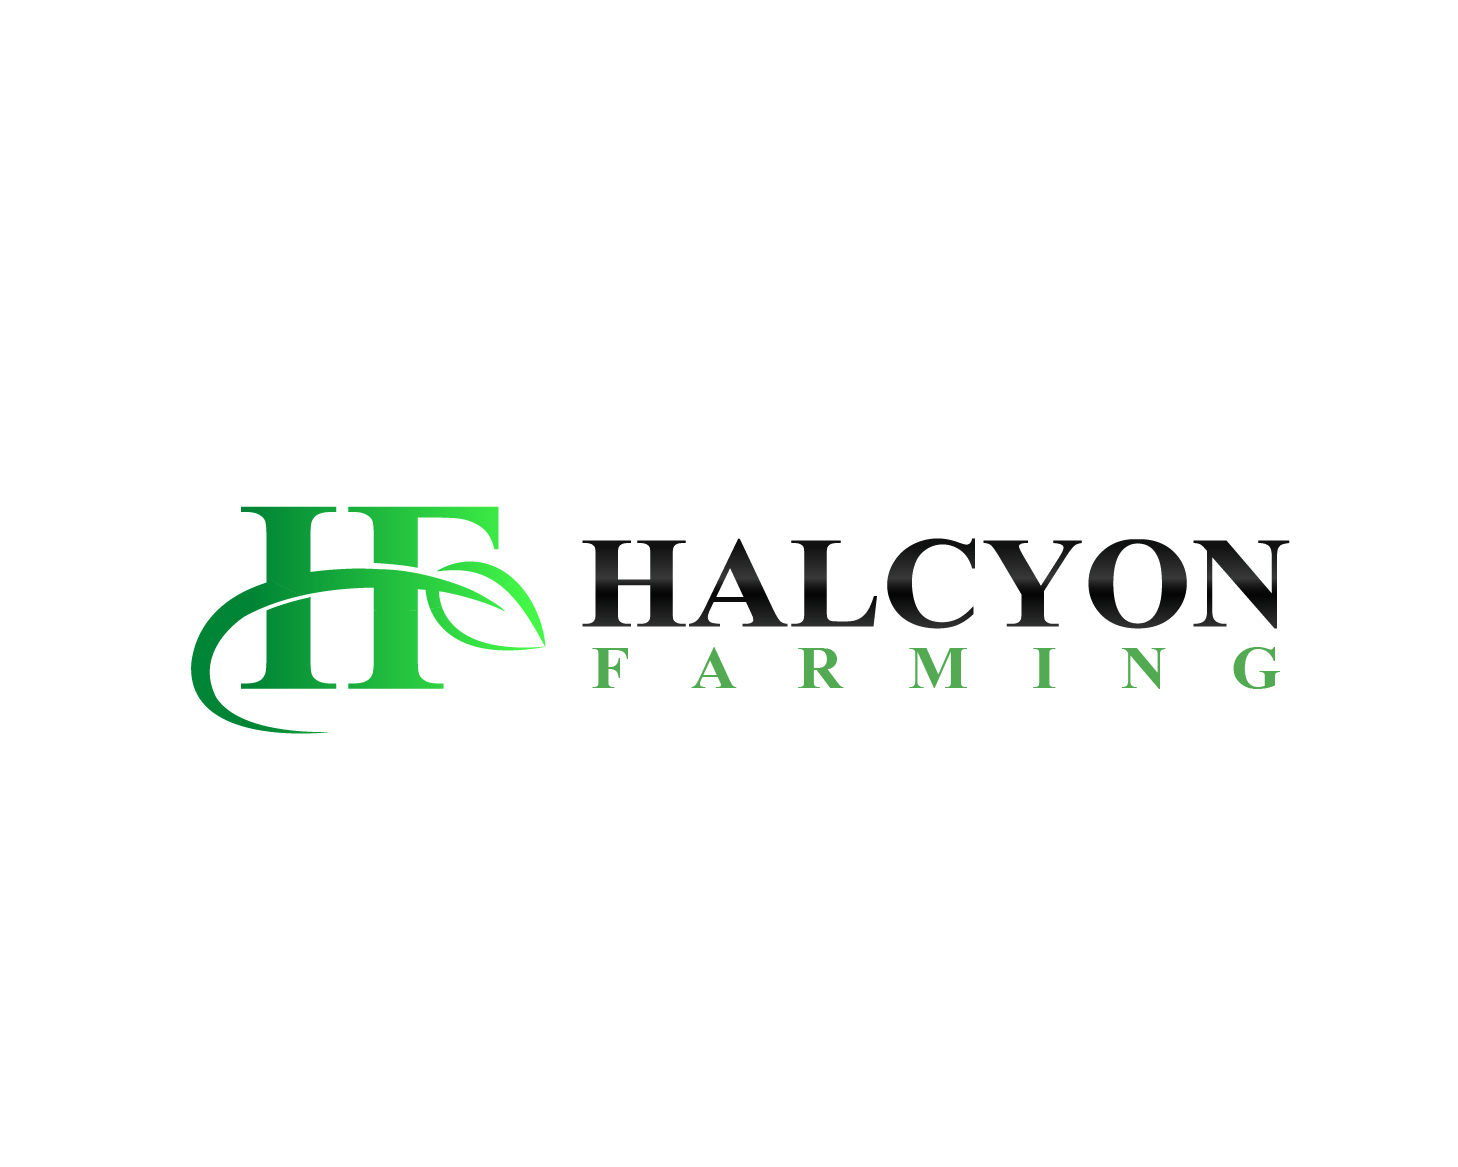 Logo Design by Allan Esclamado - Entry No. 13 in the Logo Design Contest Creative Logo Design for Halcyon Farming.